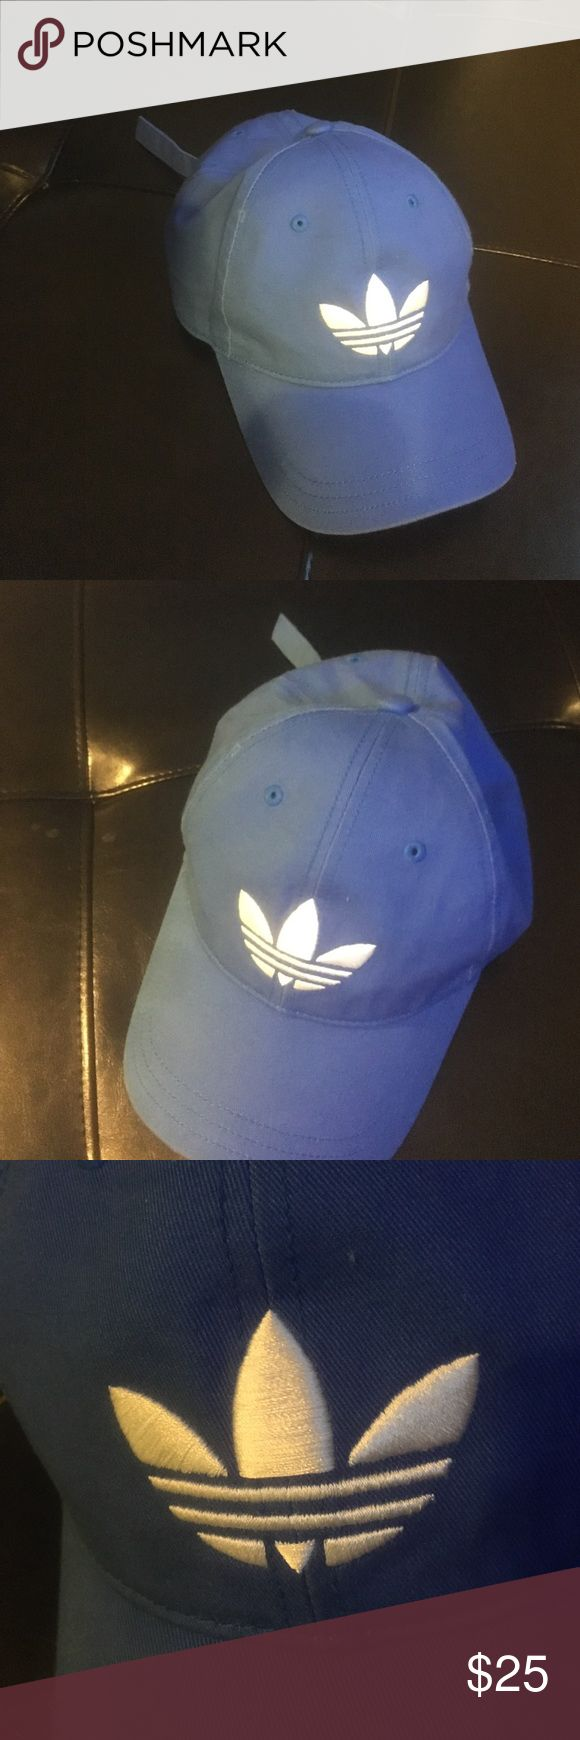 Adidas Adjustable Dad Strapback Hat - Royal Blue Unisex Adidas Adjustable Hat that is Royal Blue. Has been worn with some minor ware as pictured. Adidas Accessories Hats